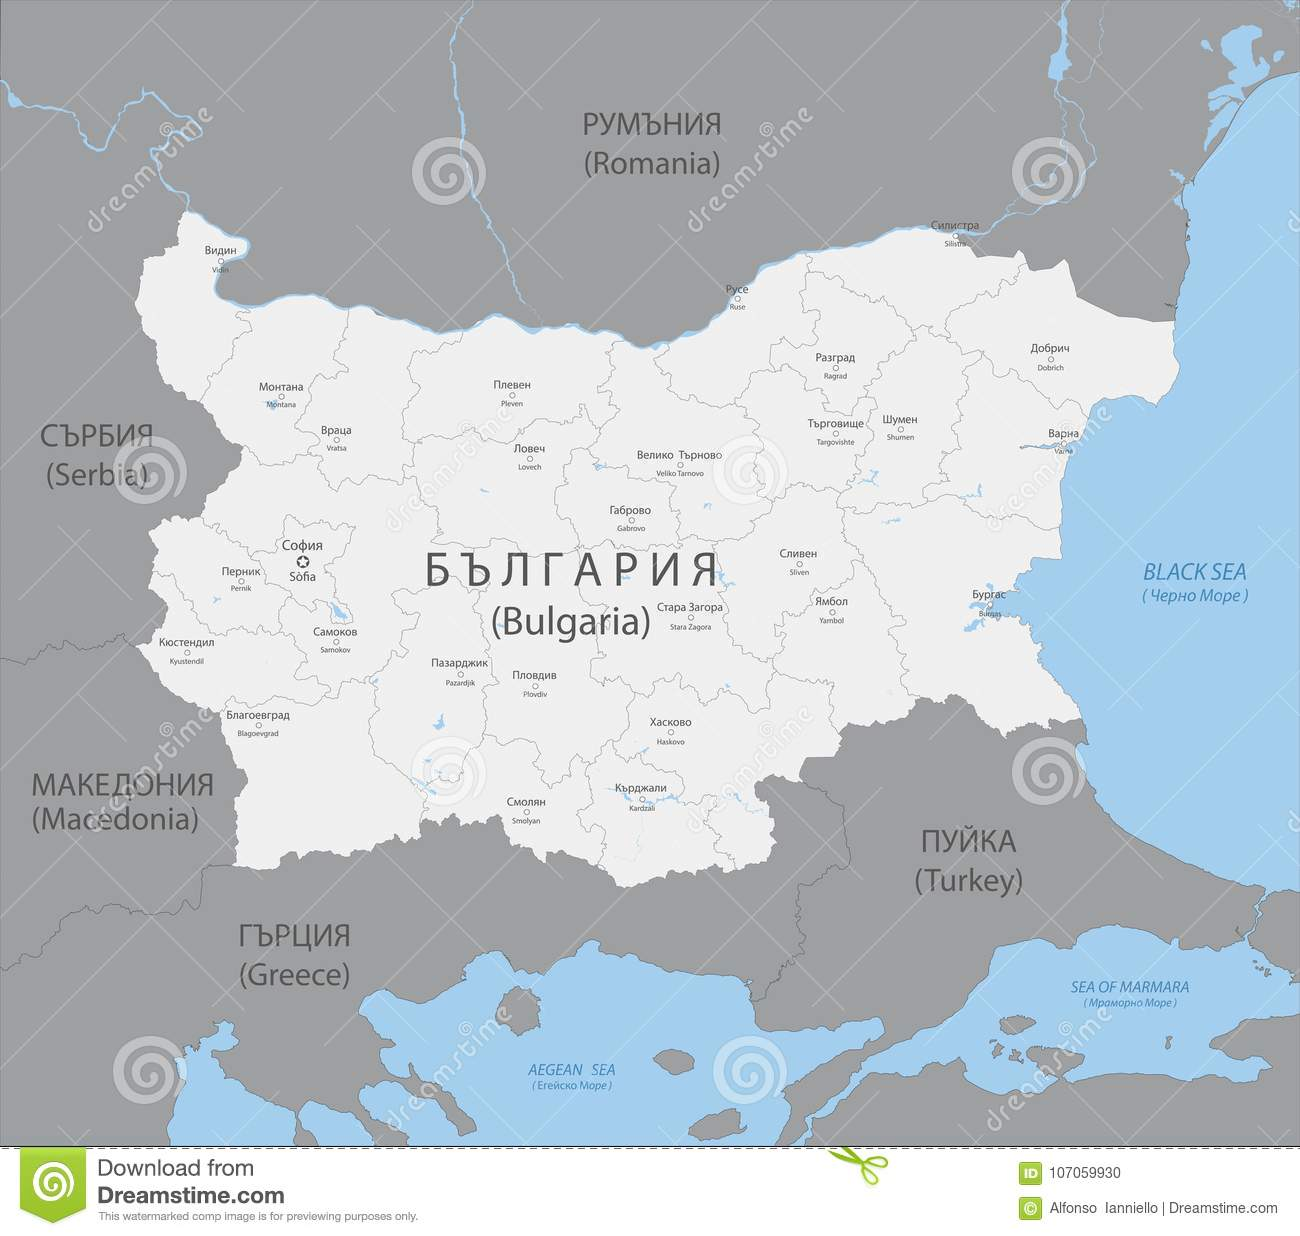 Highly Detailed Map Of Bulgaria, Vector. Stock Vector ... on detailed map of ussr, detailed map of bosnia and herzegovina, detailed map of dalmatian coast, detailed map of scottish islands, detailed map of brunei, detailed map of arabia, detailed map of united arab emirates, detailed map romania, detailed map of sub saharan africa, detailed map of marshall islands, detailed map of congo, detailed map of the carribean, detailed map of holland netherlands, detailed map of american continent, detailed map of central african republic, detailed map of the dominican republic, detailed map of usa east coast, detailed map of countries, detailed map of indian ocean, detailed map of west bank,